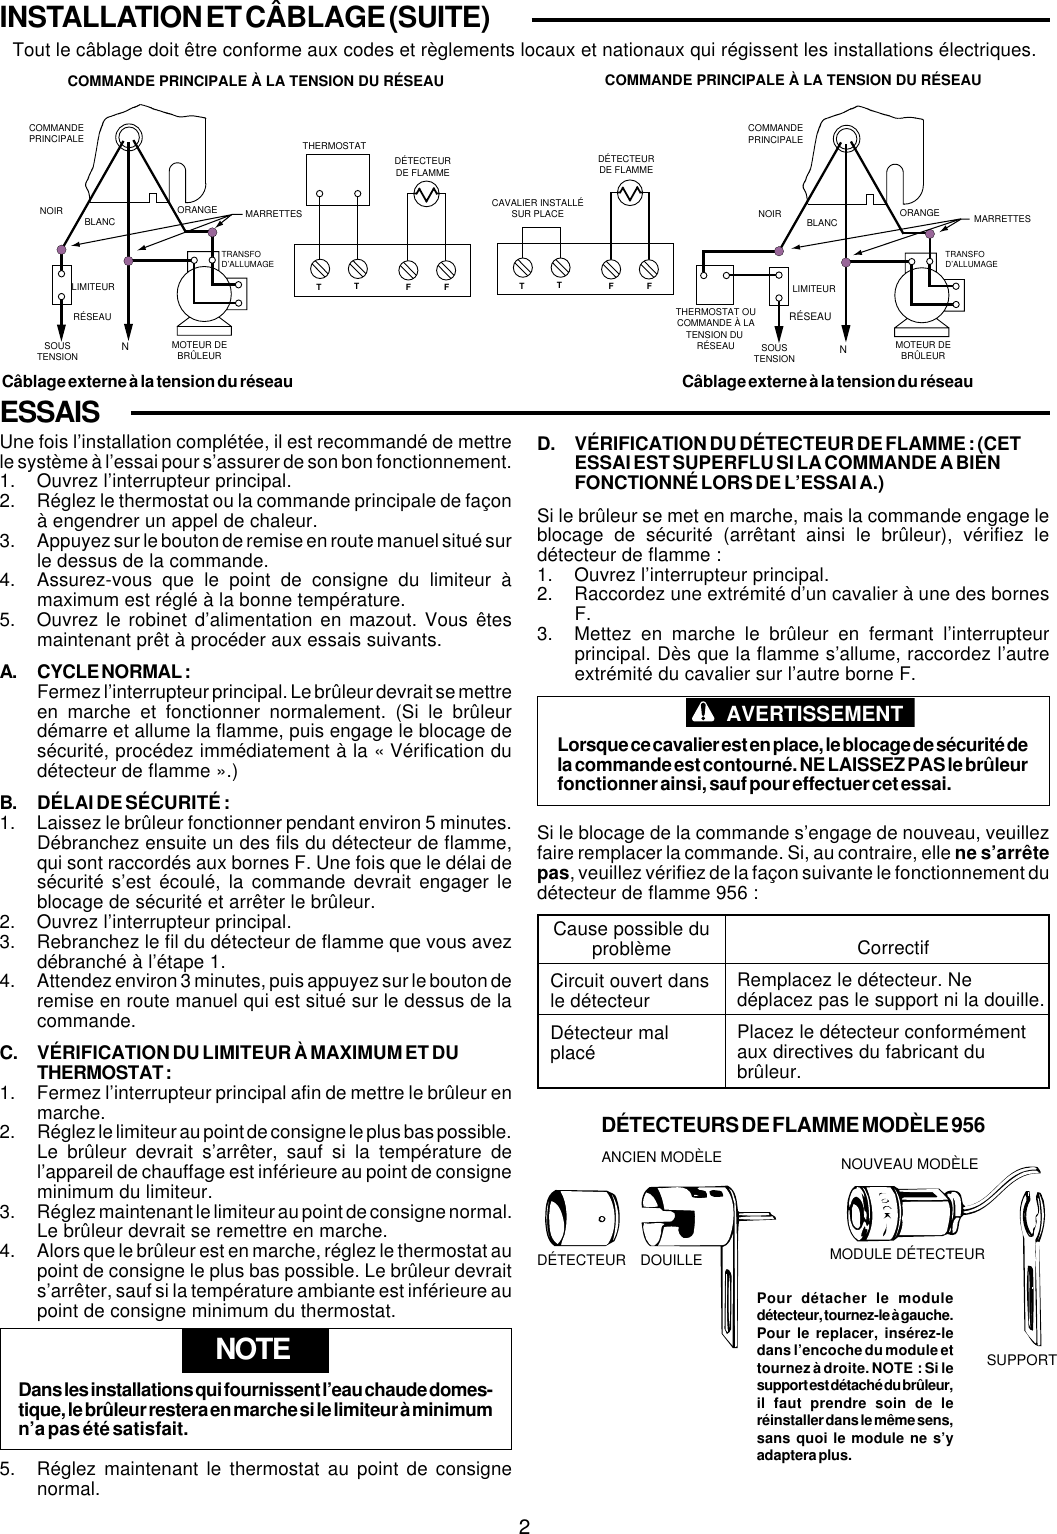 White Rodgers 668 401 Kwik Sensor Cad Cell Relays Installation Relay Wiring Diagram Page 5 Of 6